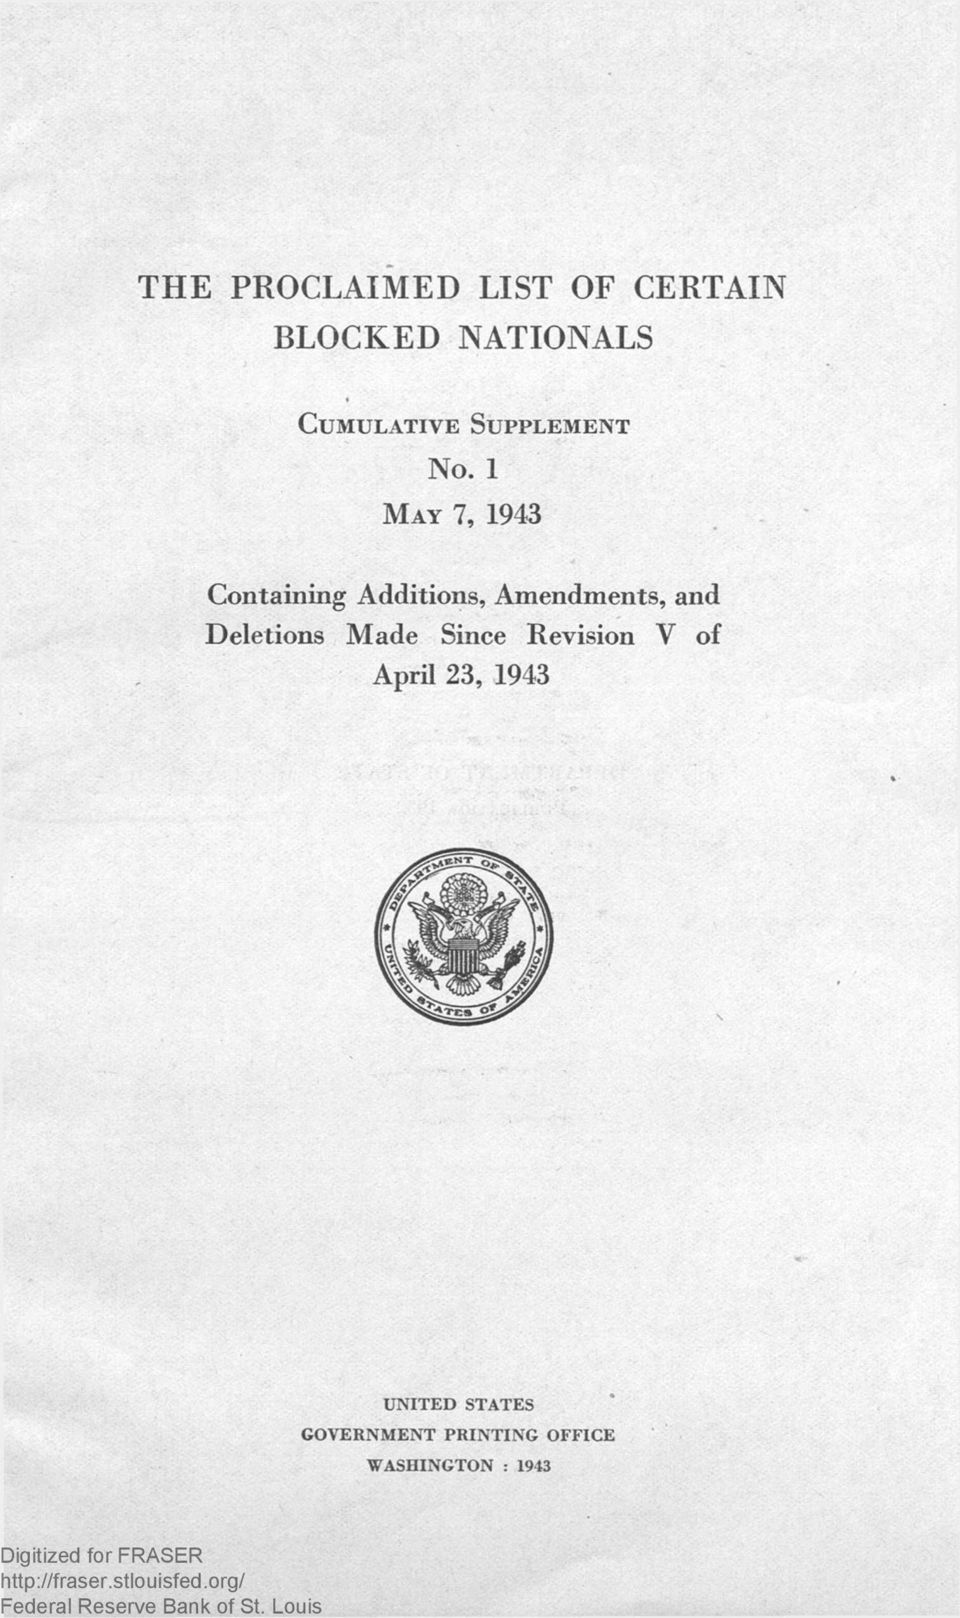 1 MAY 7, 1943 Containing Additions, Amendments, and Made